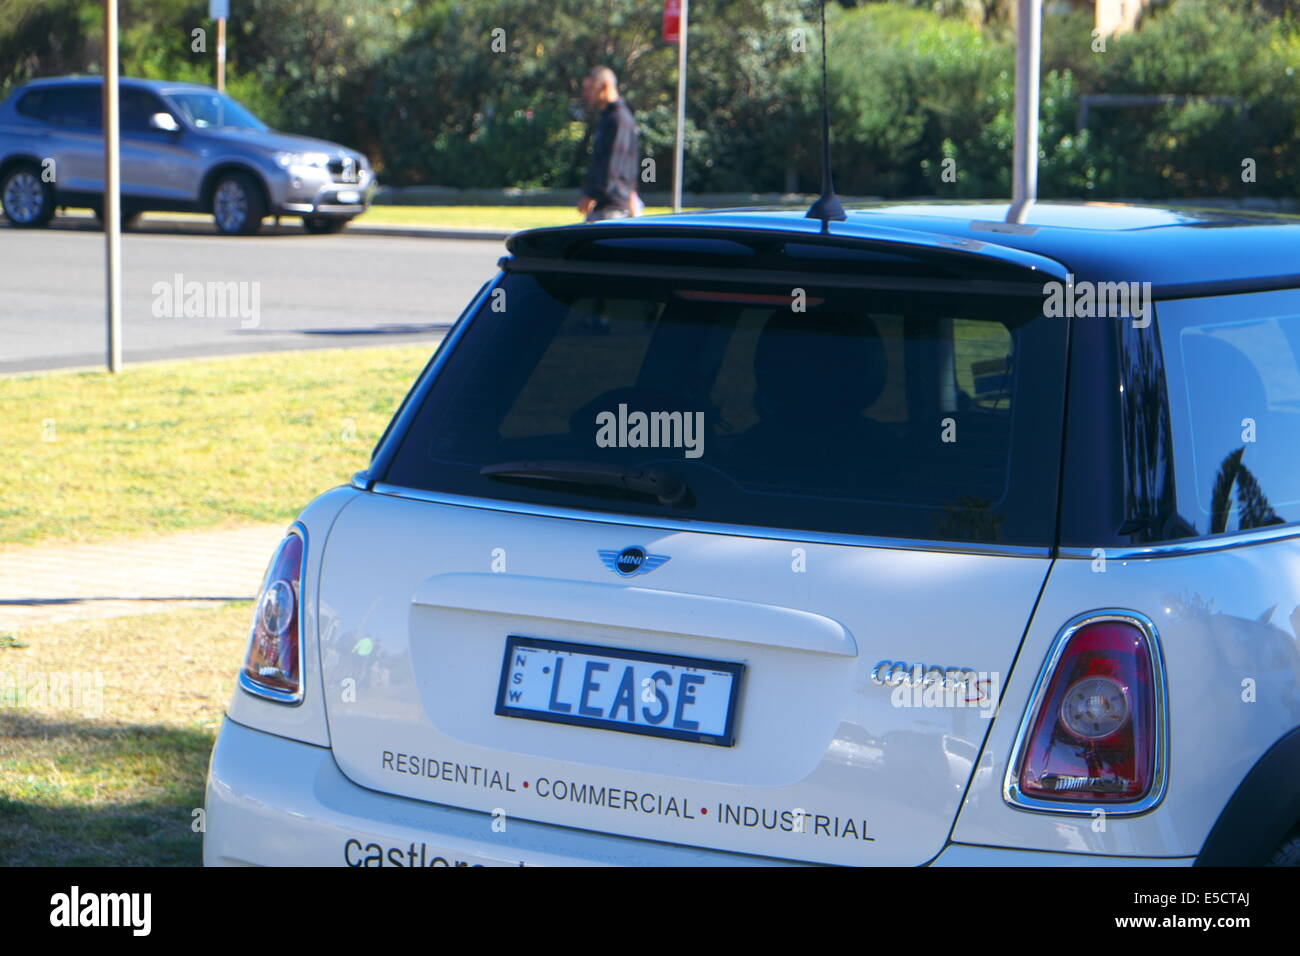 personalised number plate ' lease' for a real estate agent in Sydney,australia - Stock Image